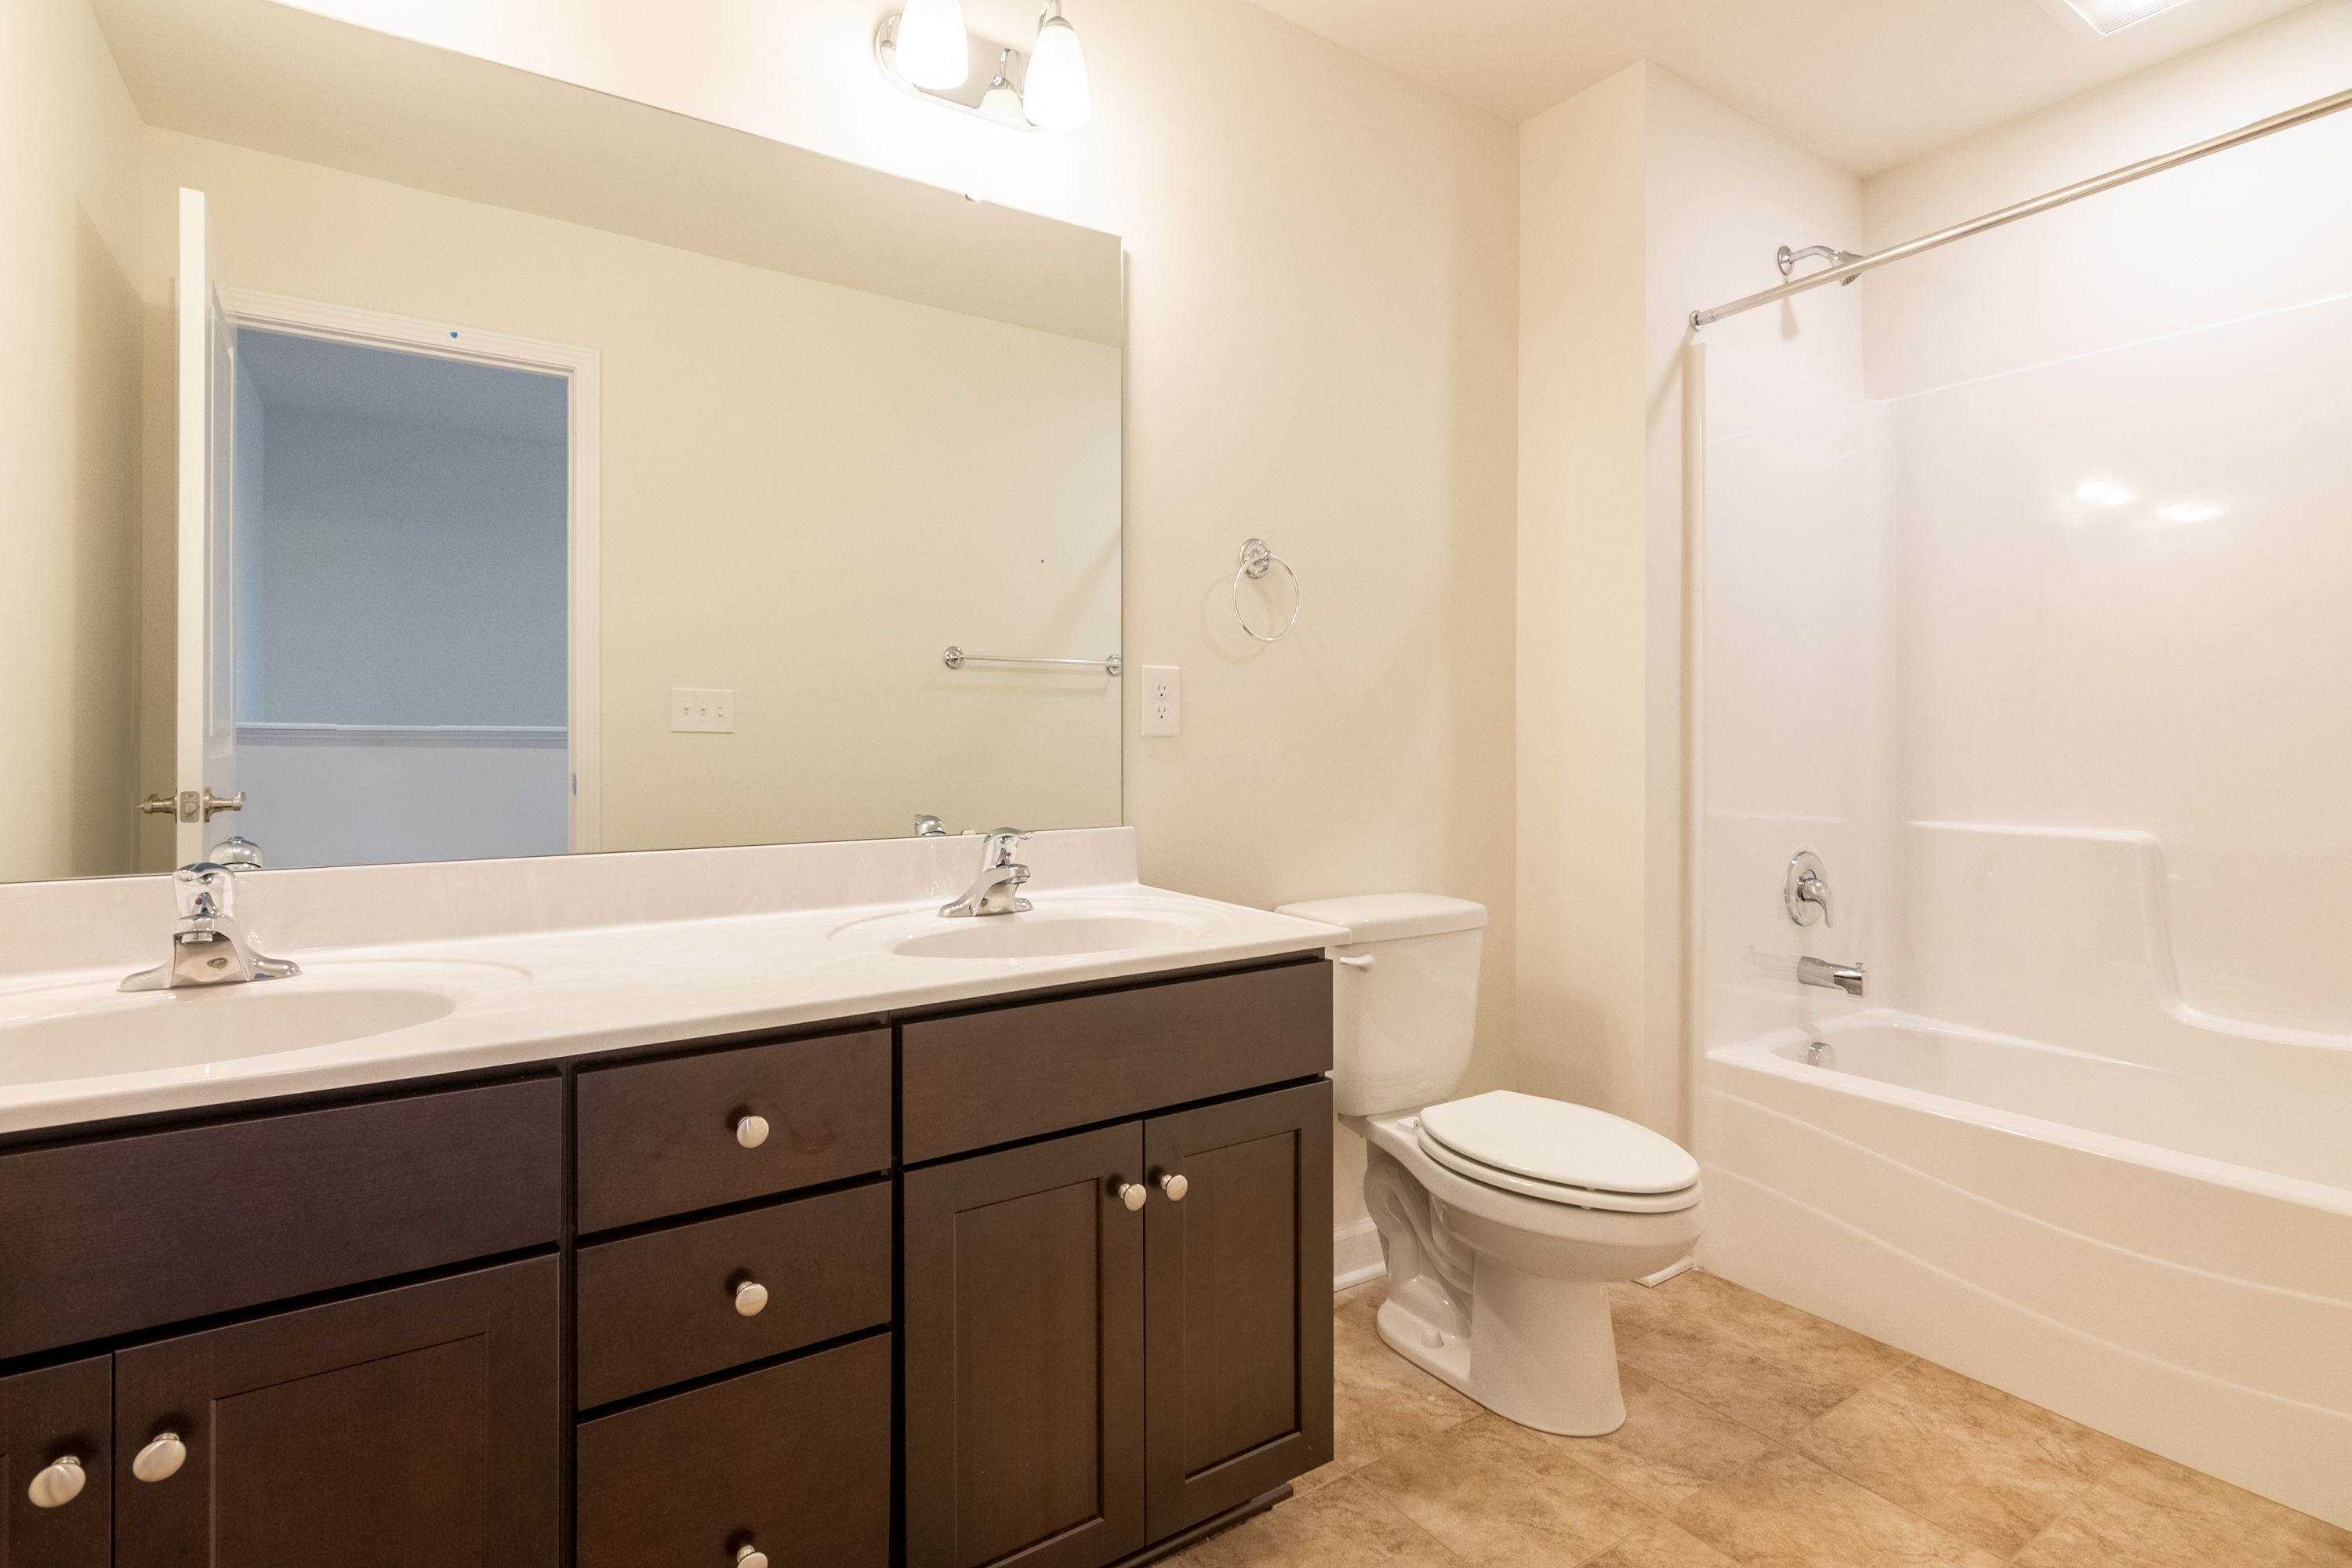 Bathroom featured in The Abingdon By Stateson Homes in Blacksburg, VA